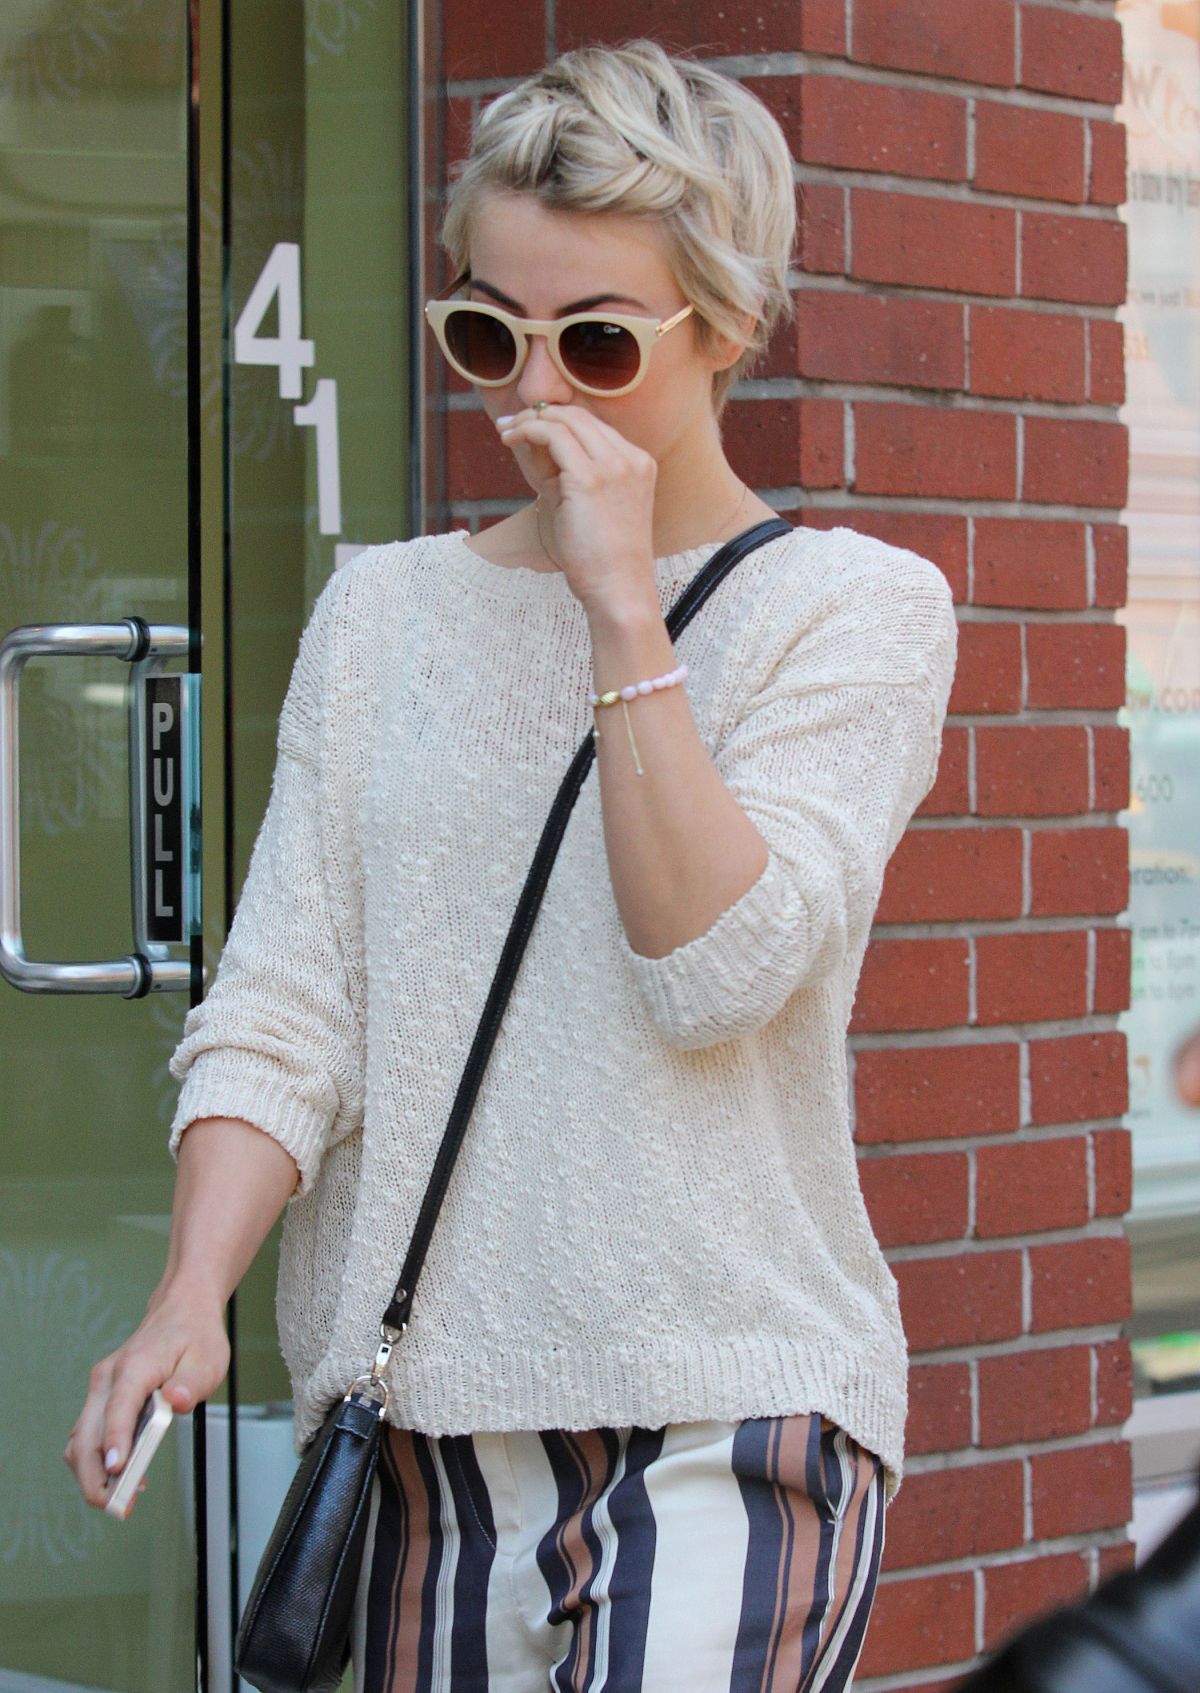 JULIANNE HOUGH at a Nail Salon in Beverly Hills